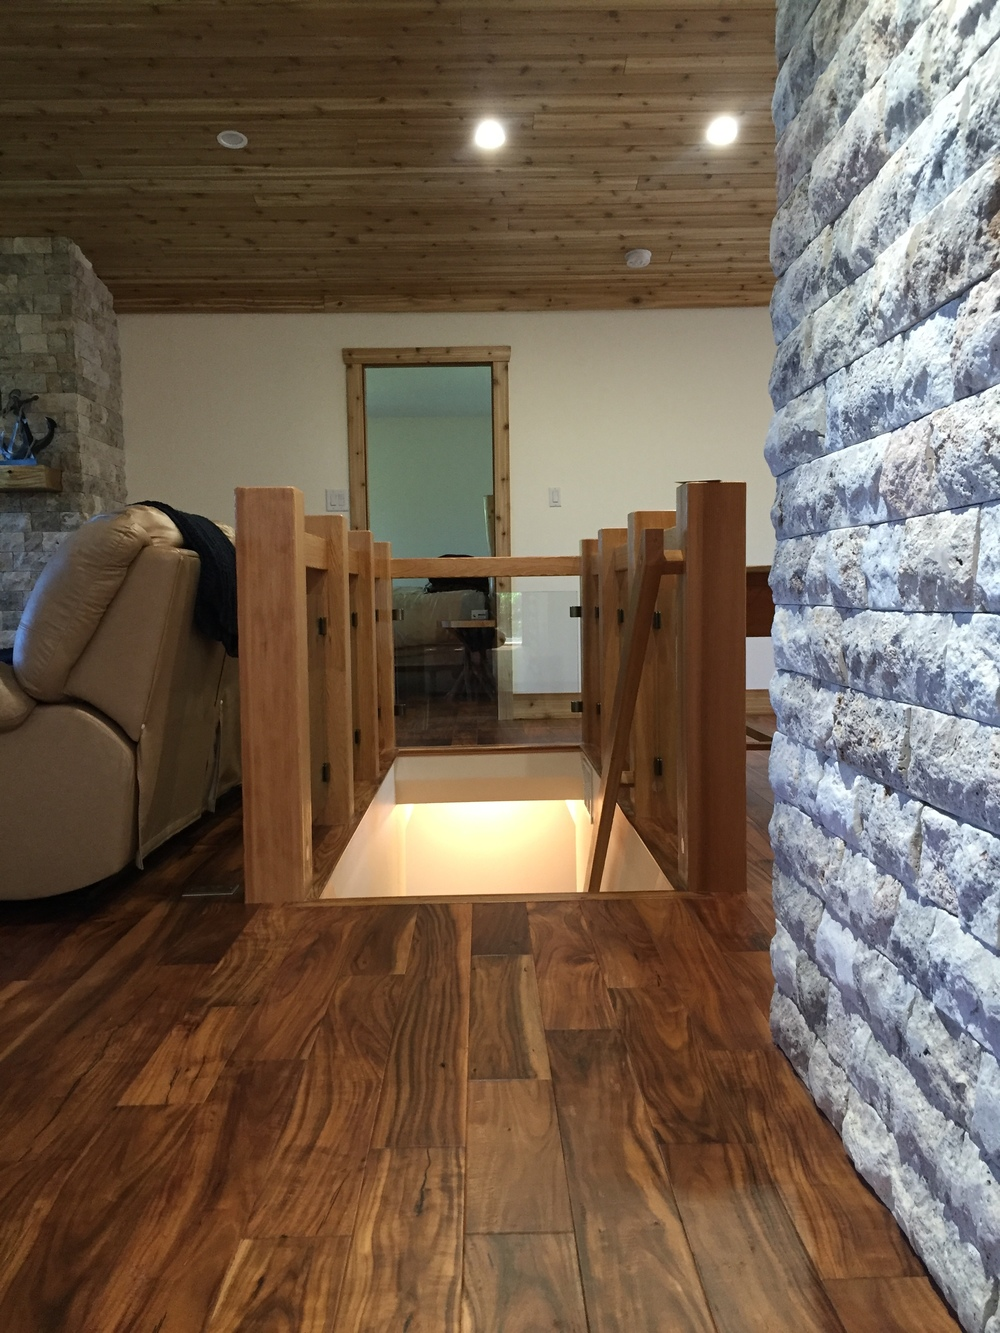 Cedar beam and glass stair surround, cedar ceiling and rustic stone feature wall.